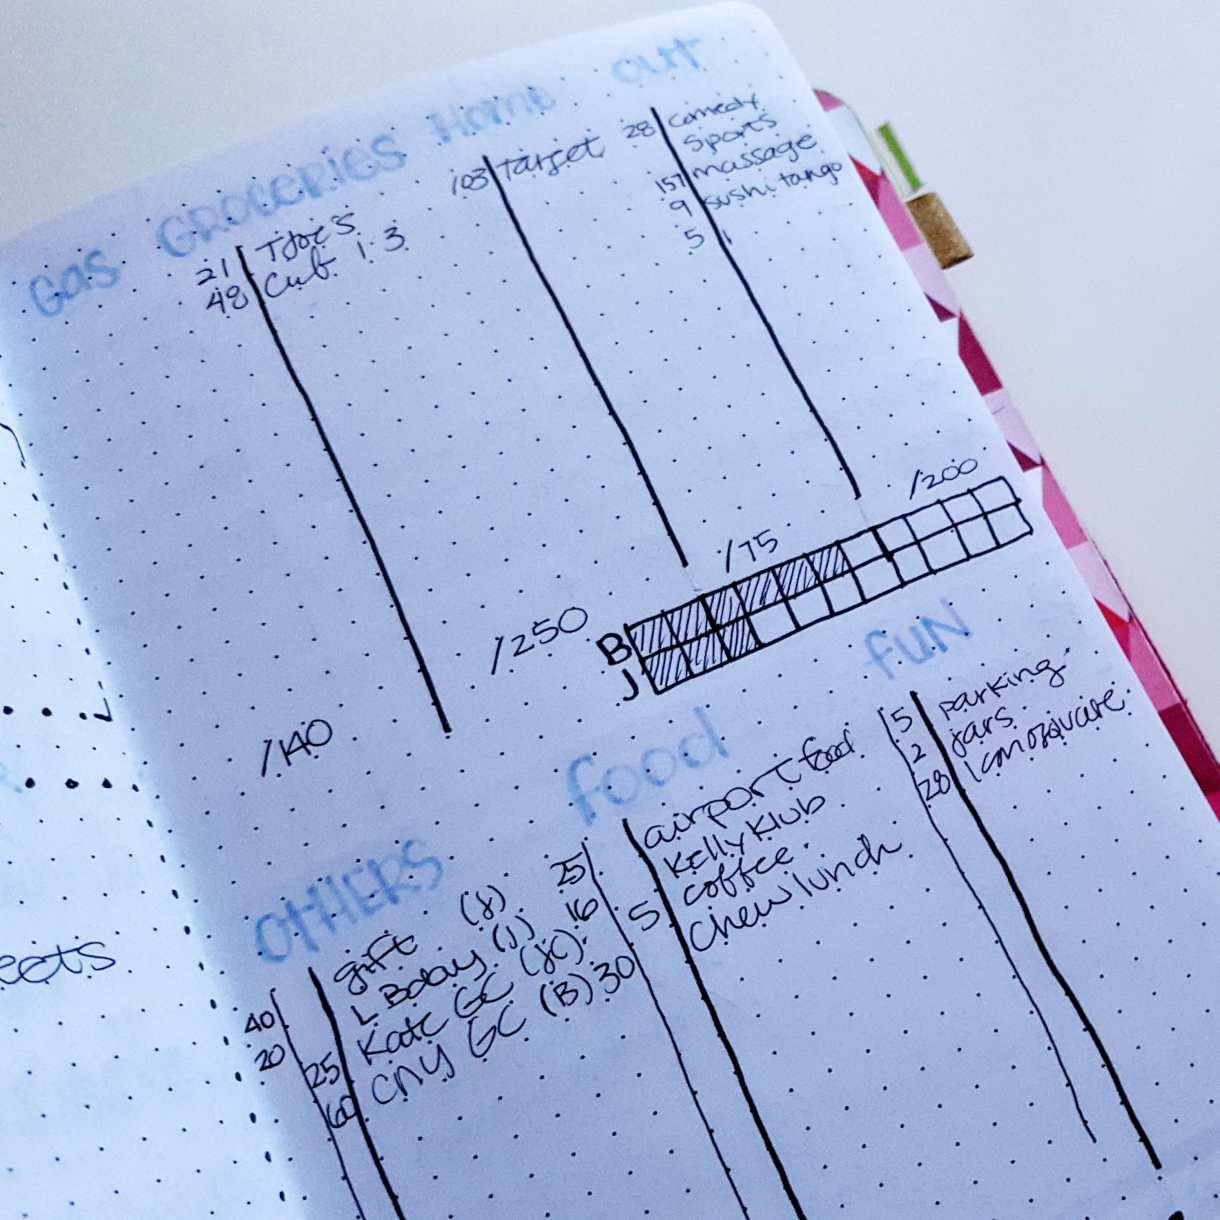 Once you have your budget numbers, you can track expenses in your bullet journal in categories or with a visual tracker // www.prettyprintsandpaper.com